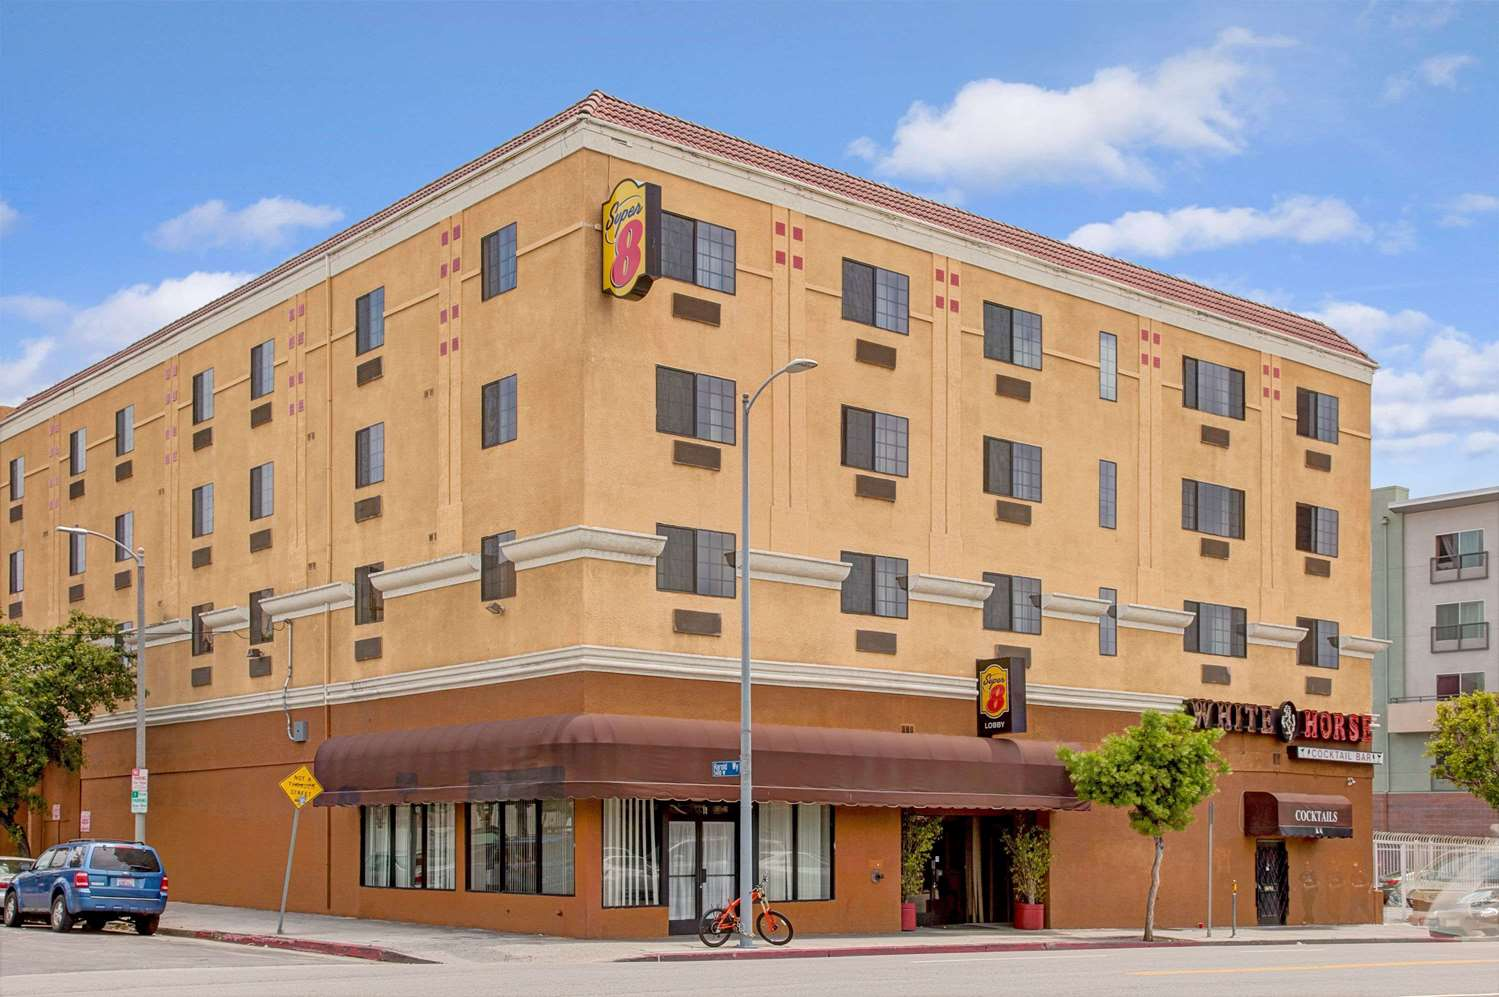 Super 8 Hotel Hollywood